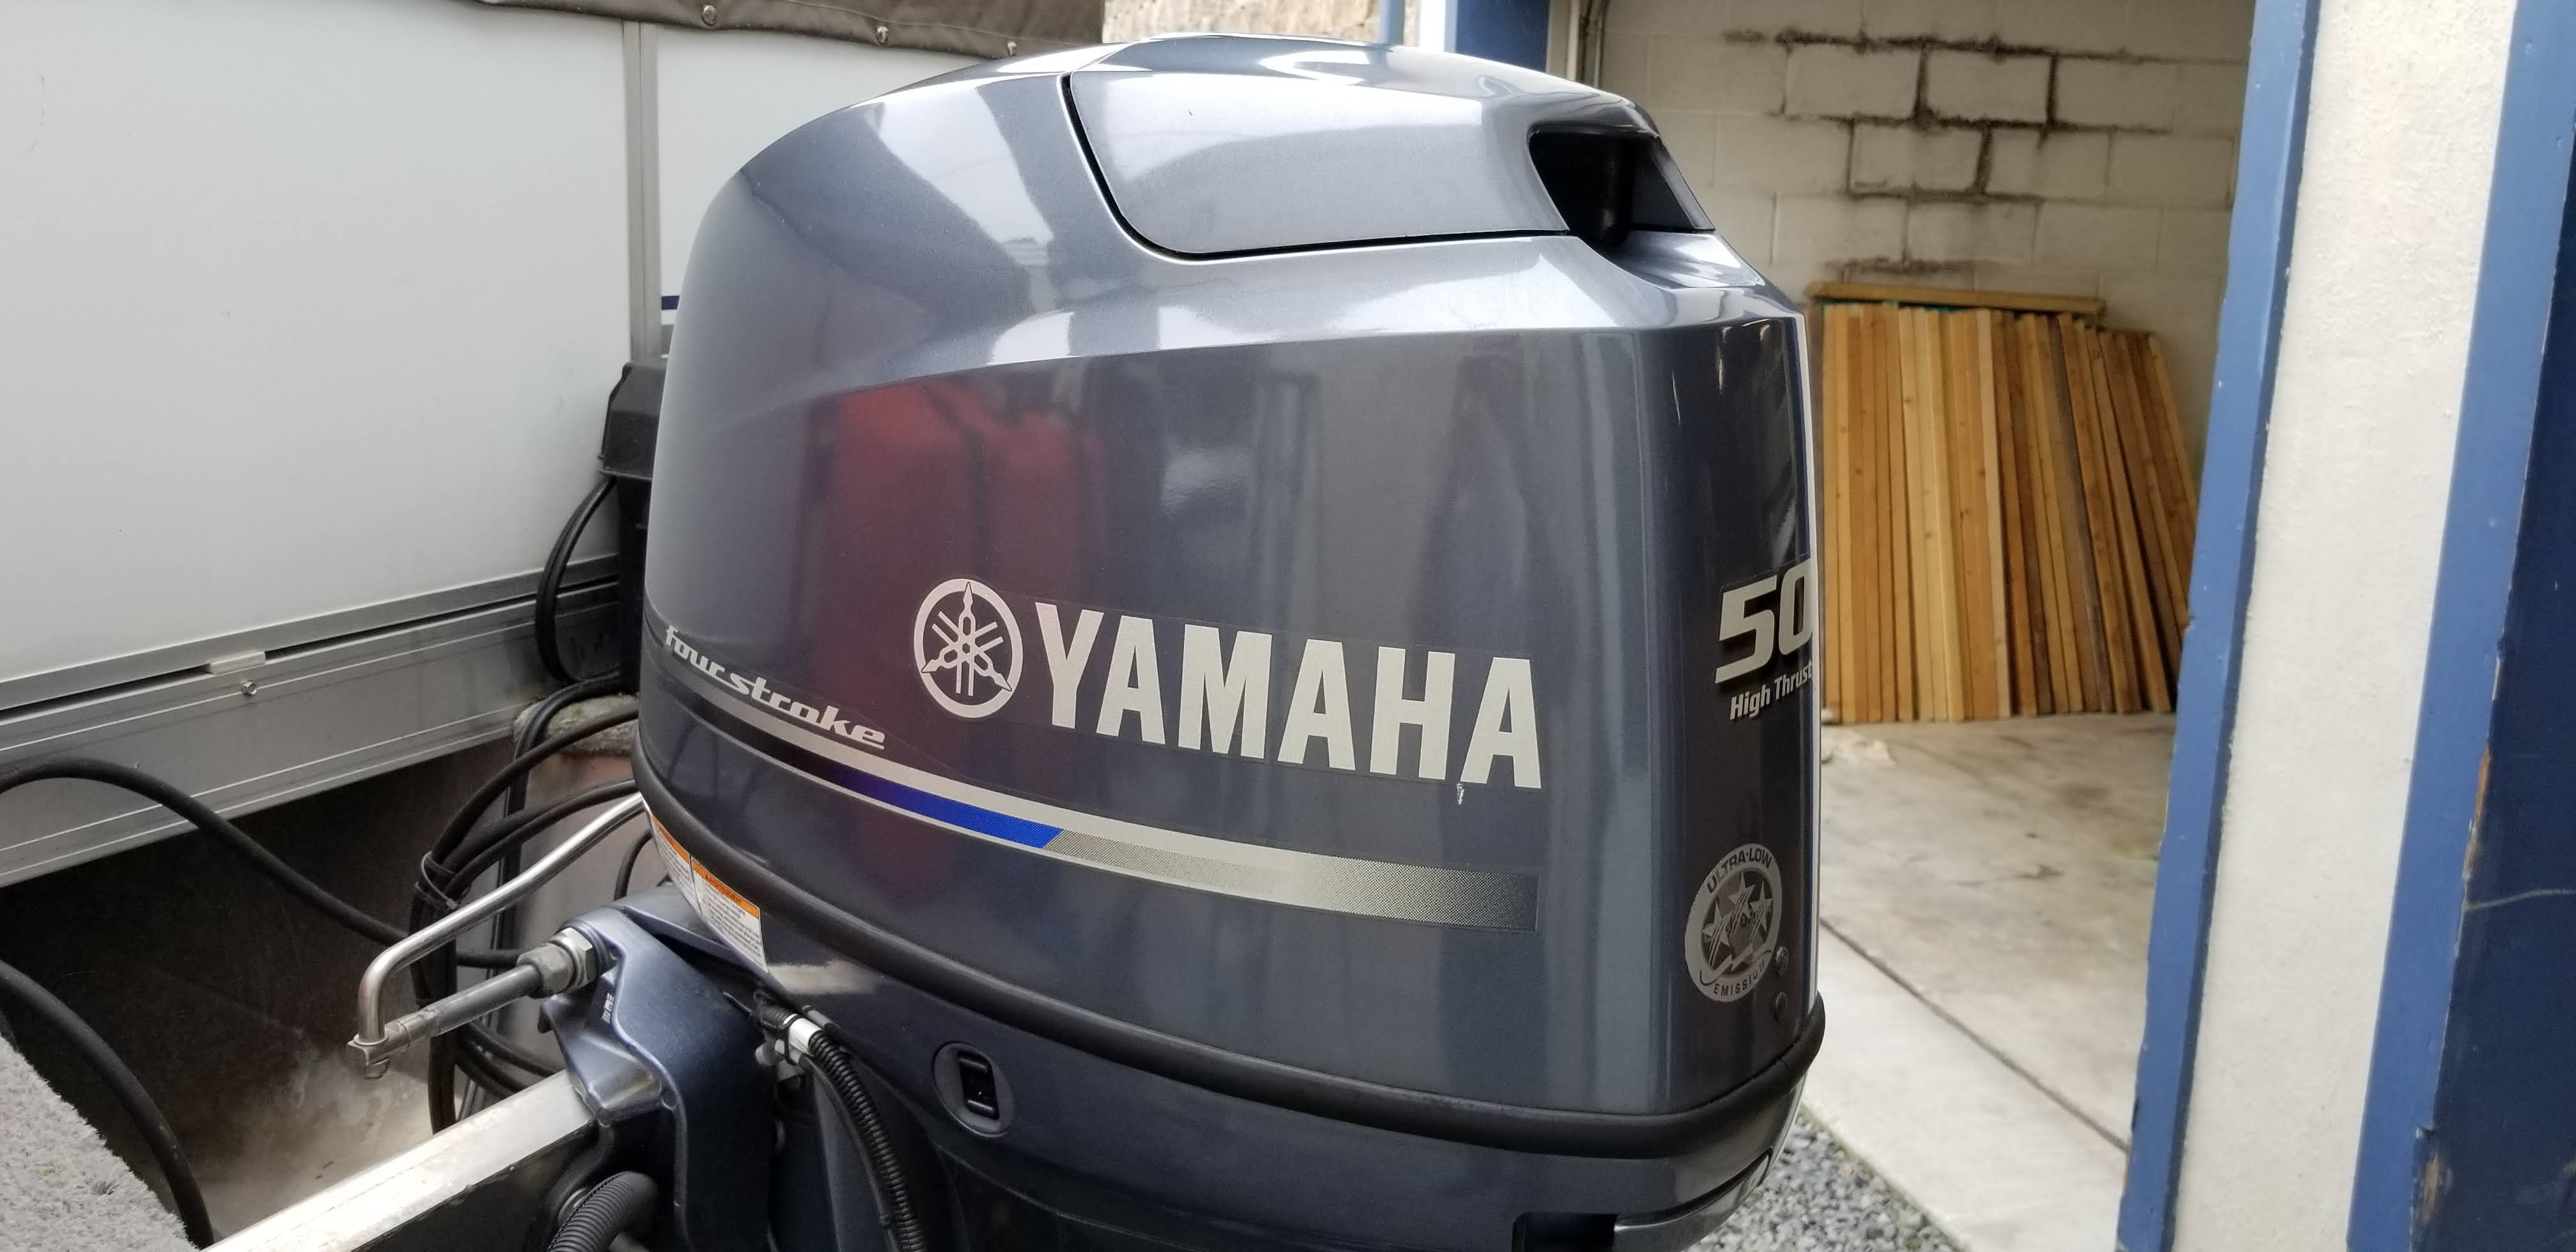 YAMAHA 50 HIGH TRUST FOUR STROKE